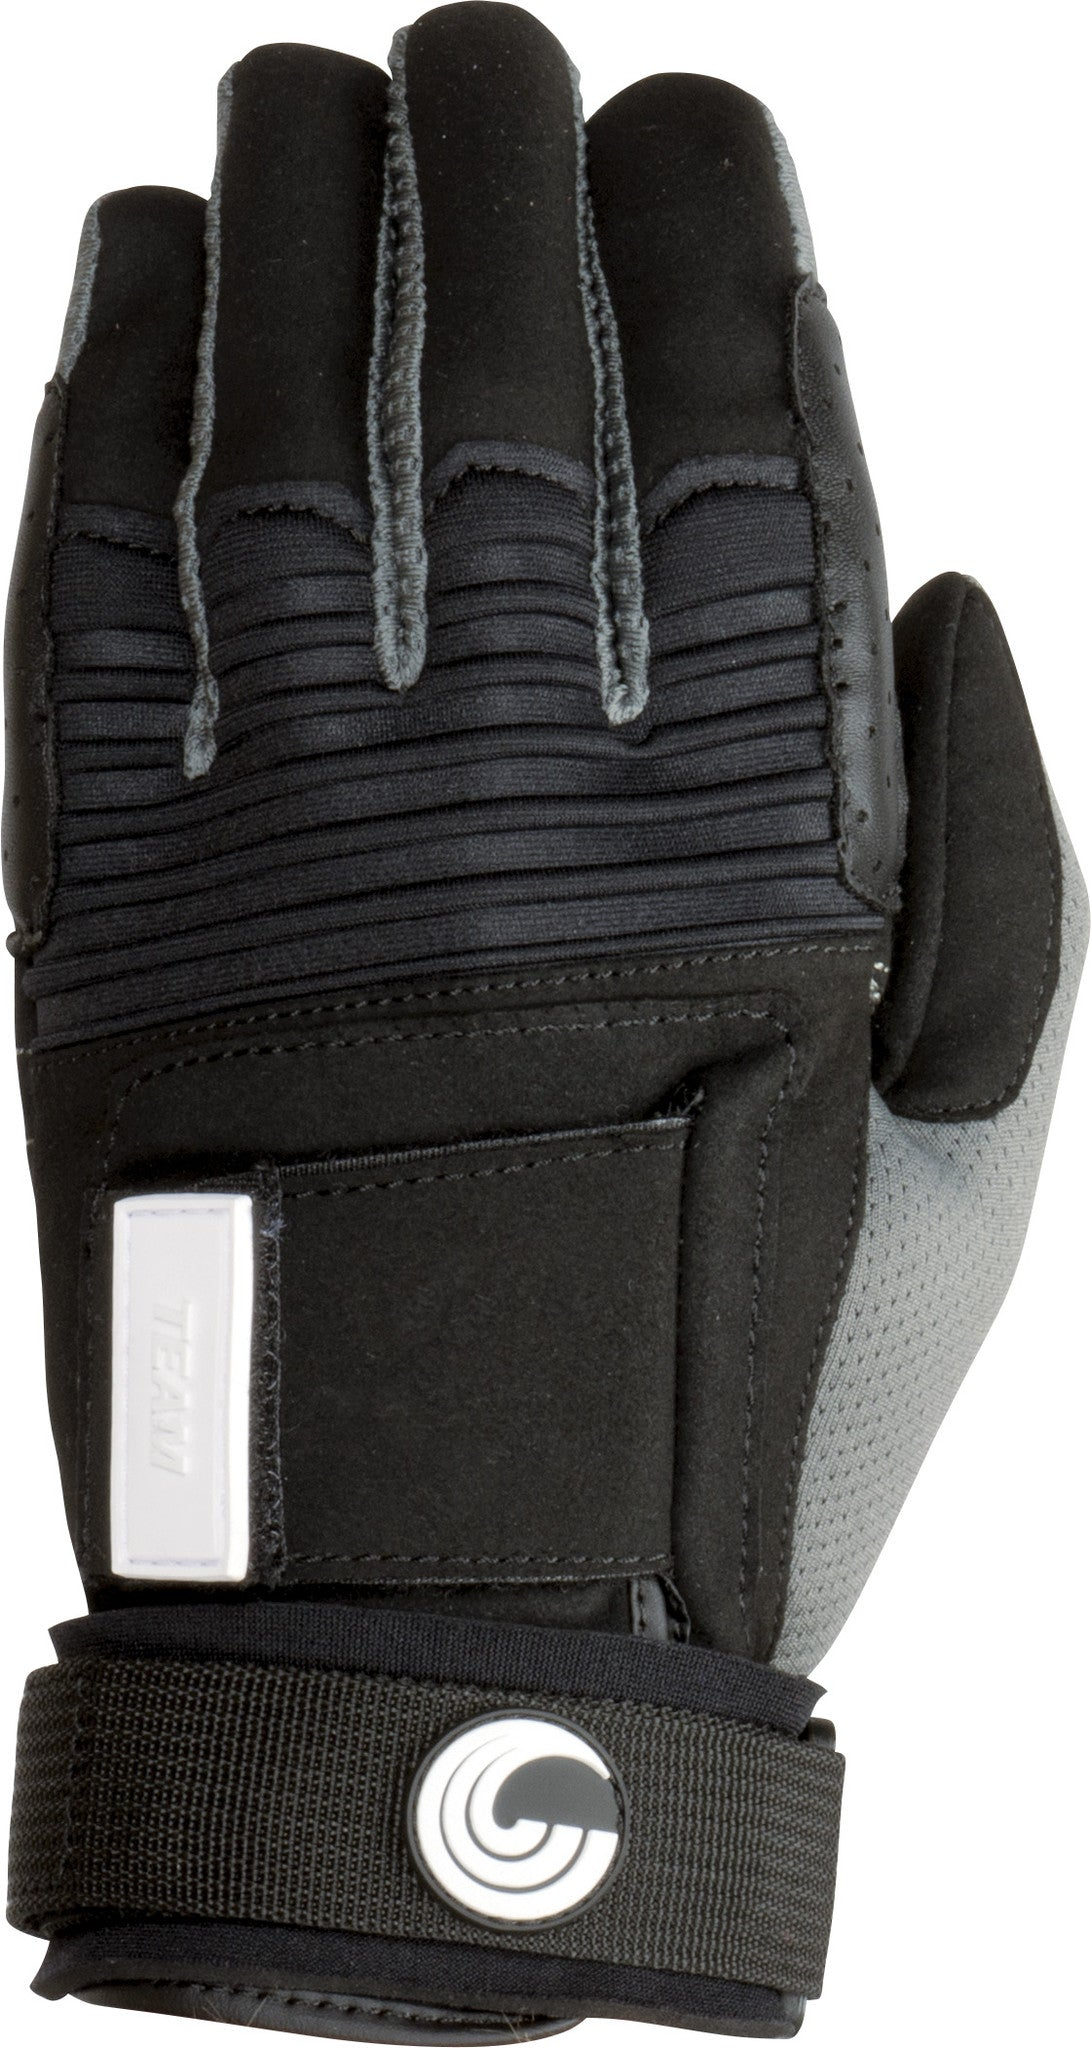 glove front view